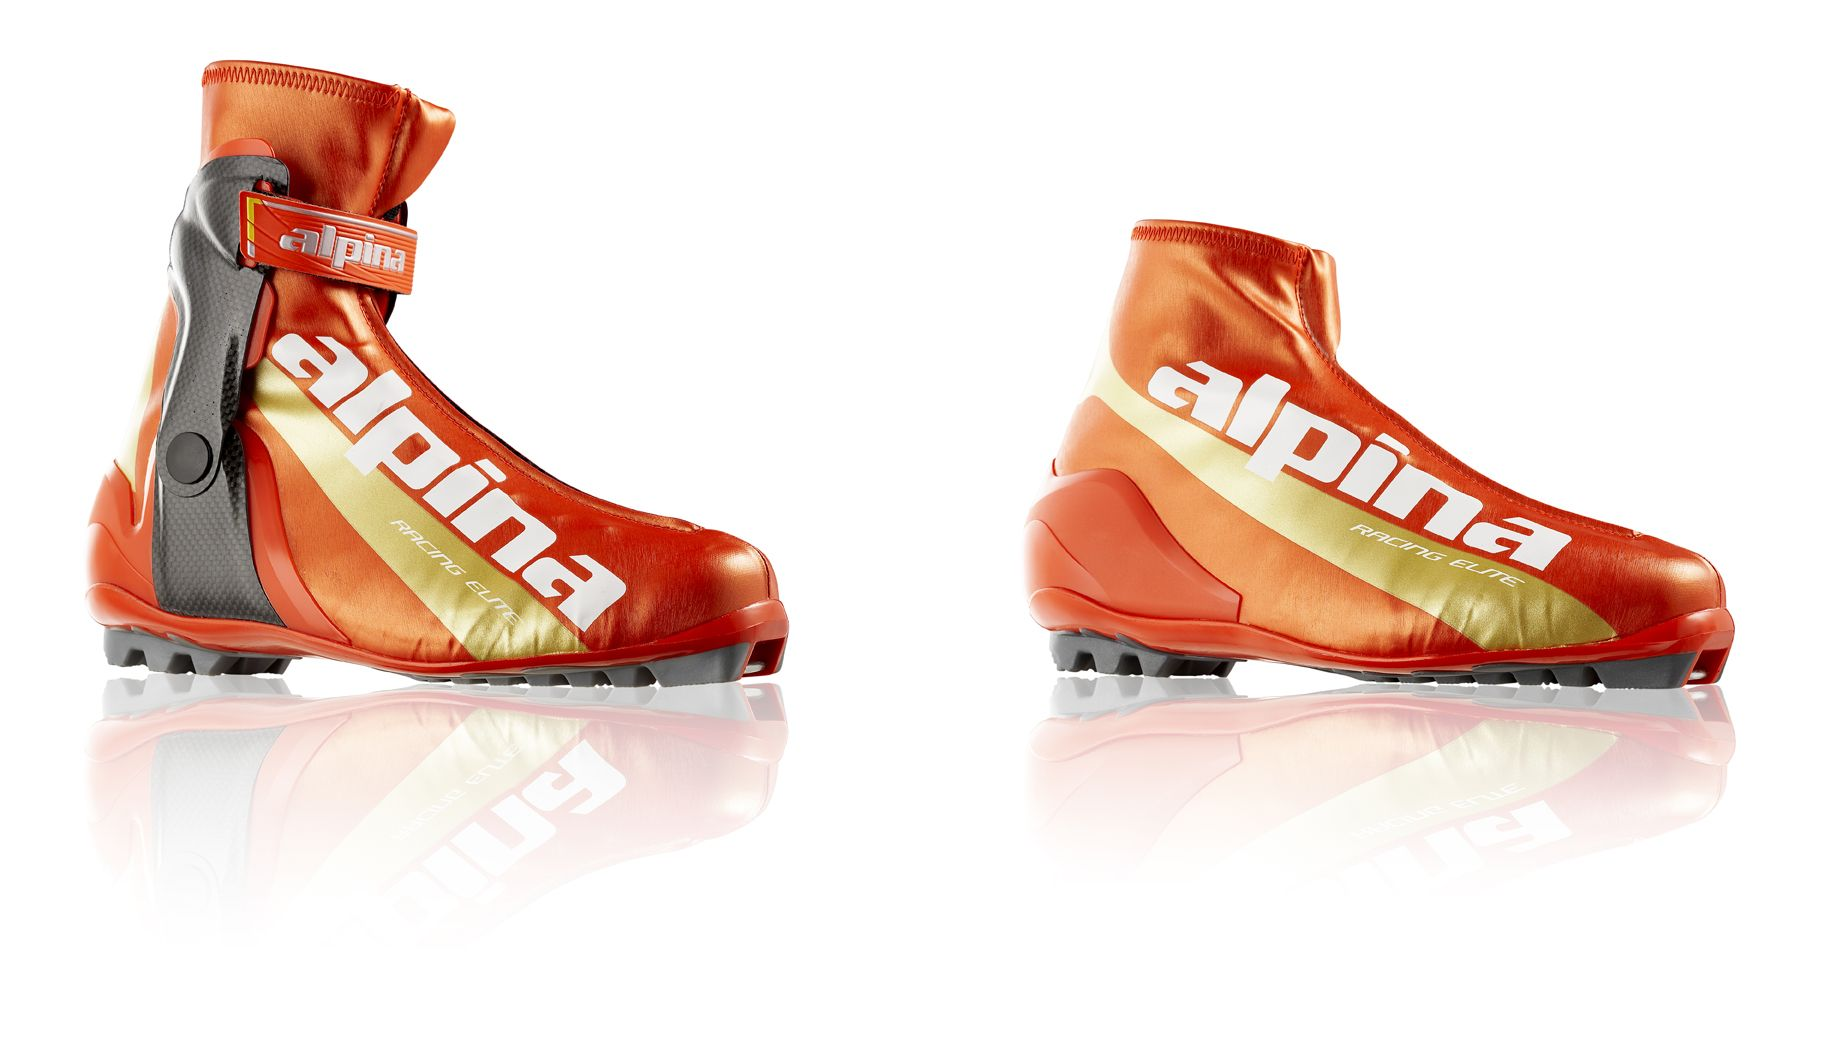 Alpina Racing Elite CS And CL Cross Country Ski Boots By Jure - Alpina skate ski boots